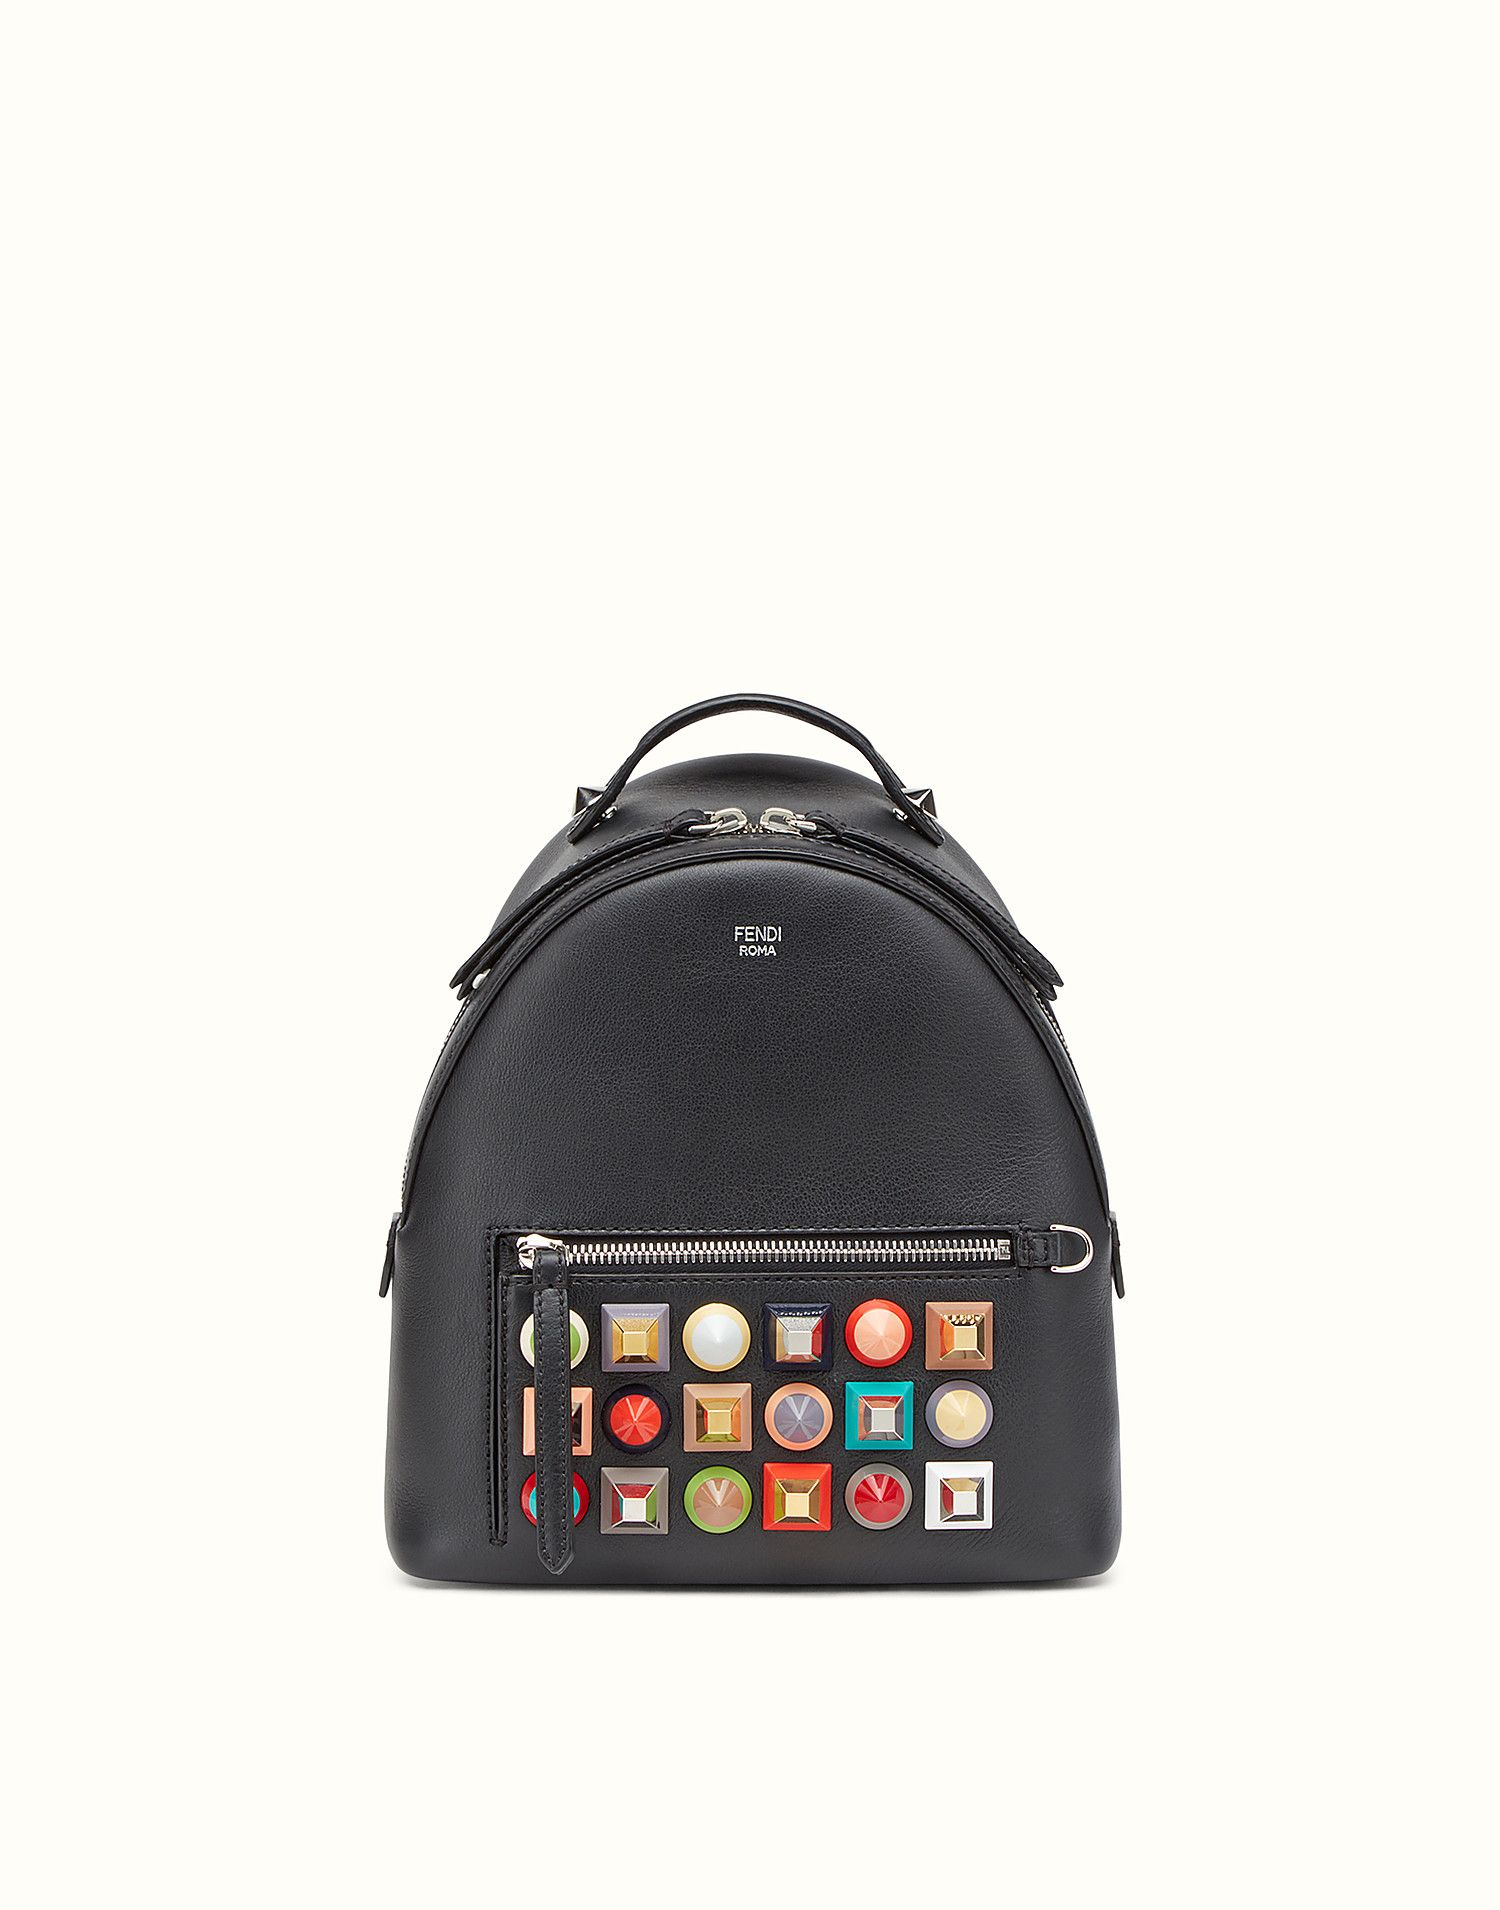 FENDI BACKPACK - in black leather with studs - view 1 zoom  e5db1756442af